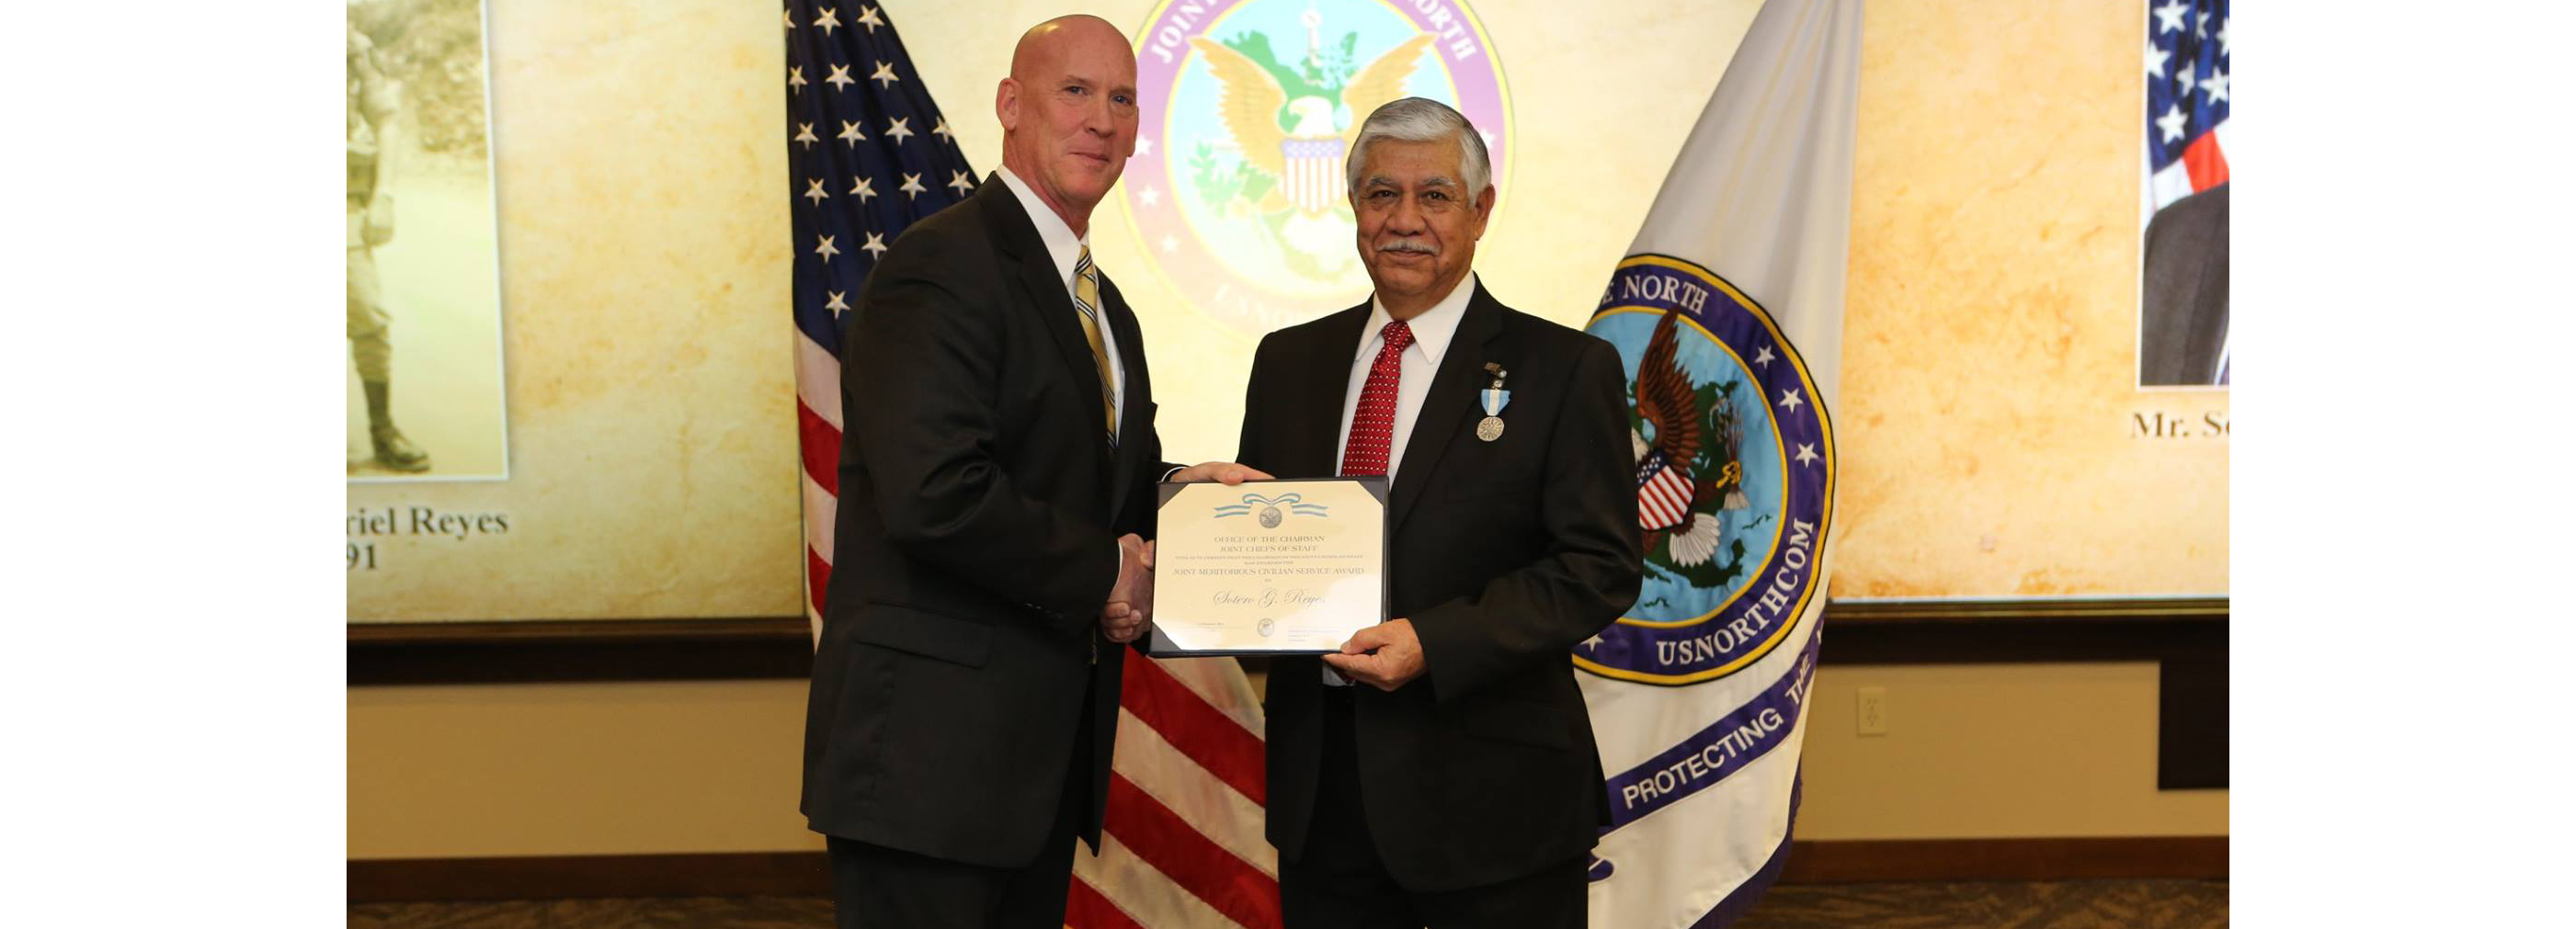 Reyes Retires After 50-Year Military, Civil Service Career